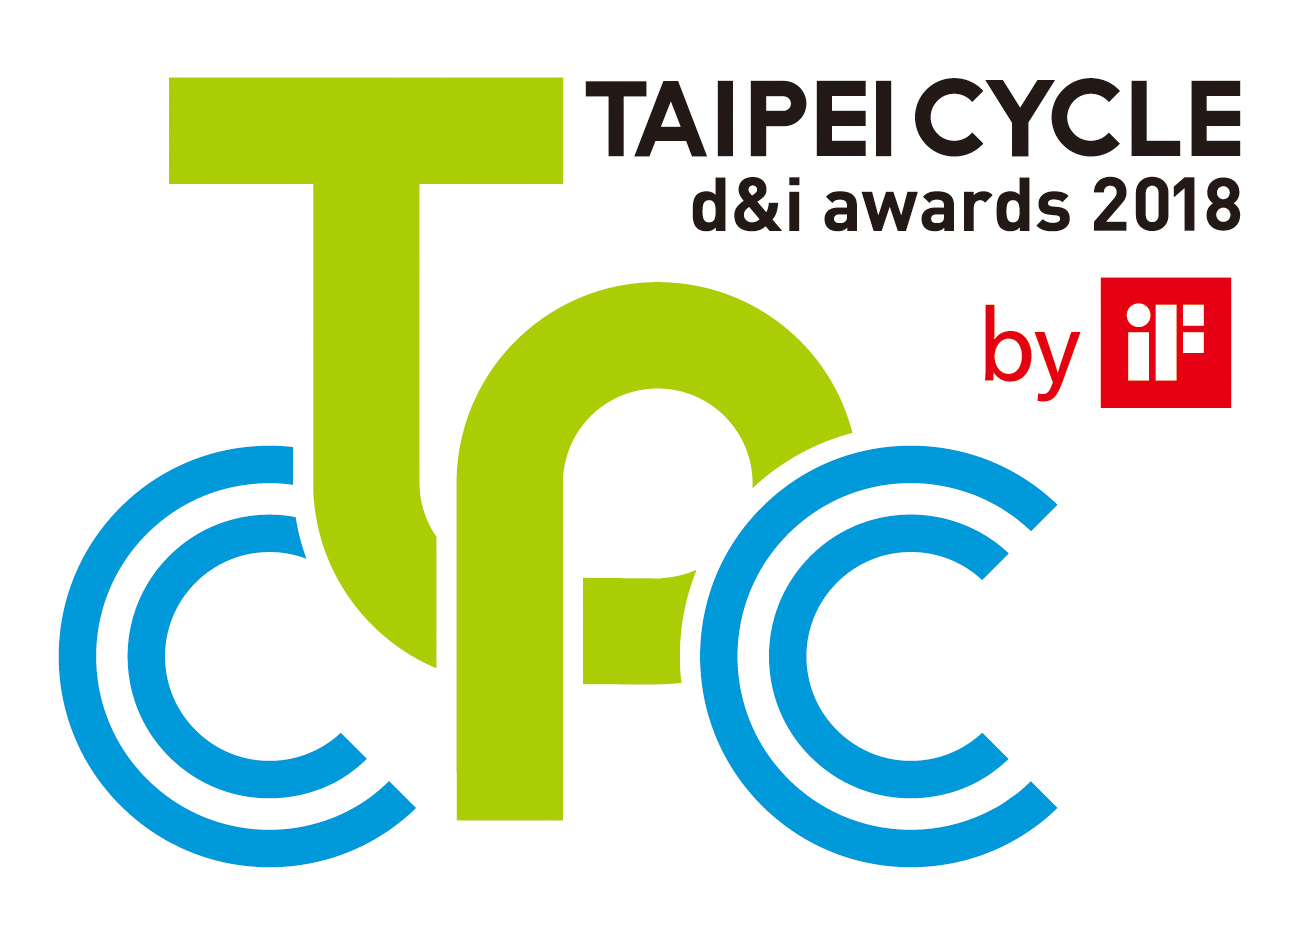 TAIPEI CYCLE d&i awards 2018